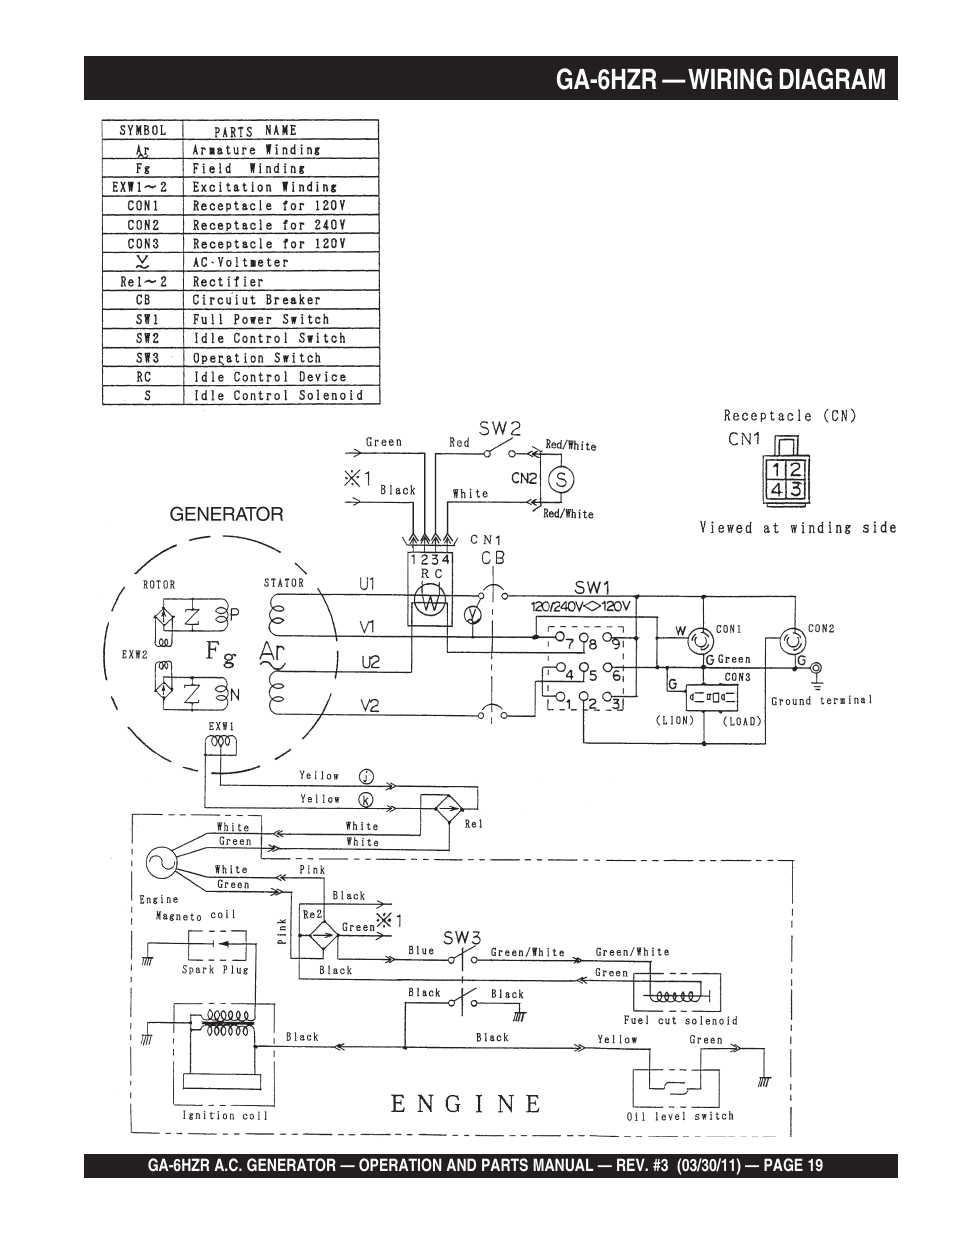 2001 Chrysler 300m Speaker Wiring Schematic 2001 Chrysler